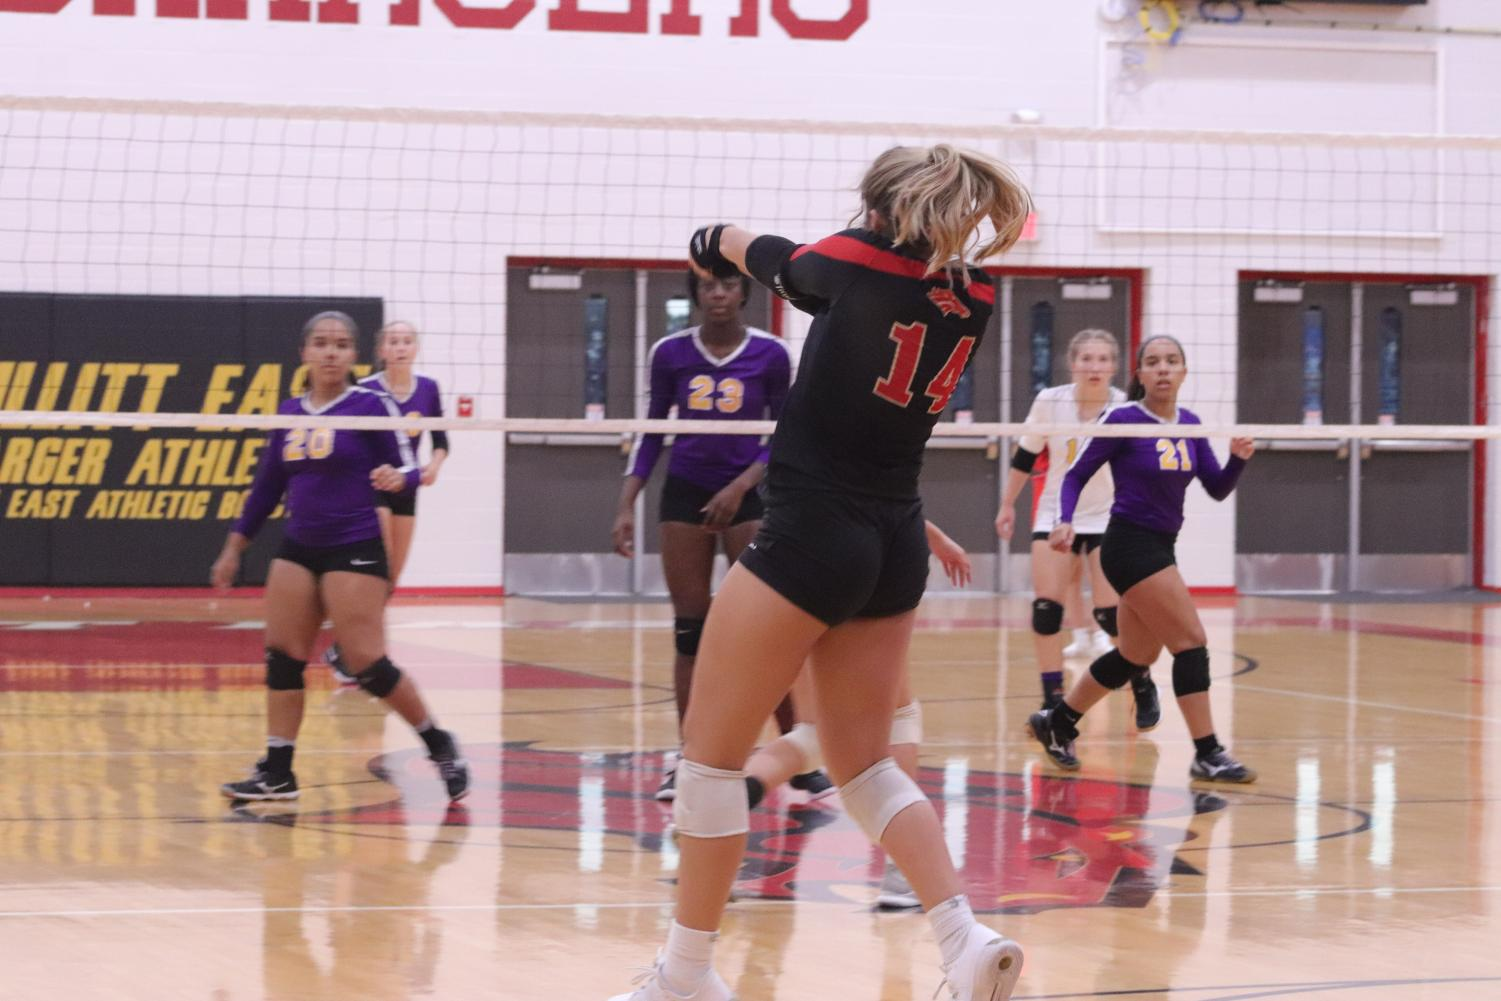 Junior Emily Popplewell passes the ball over the net. The Lady Chargers won this game against Bardstown High School. Senior Halle Key said,